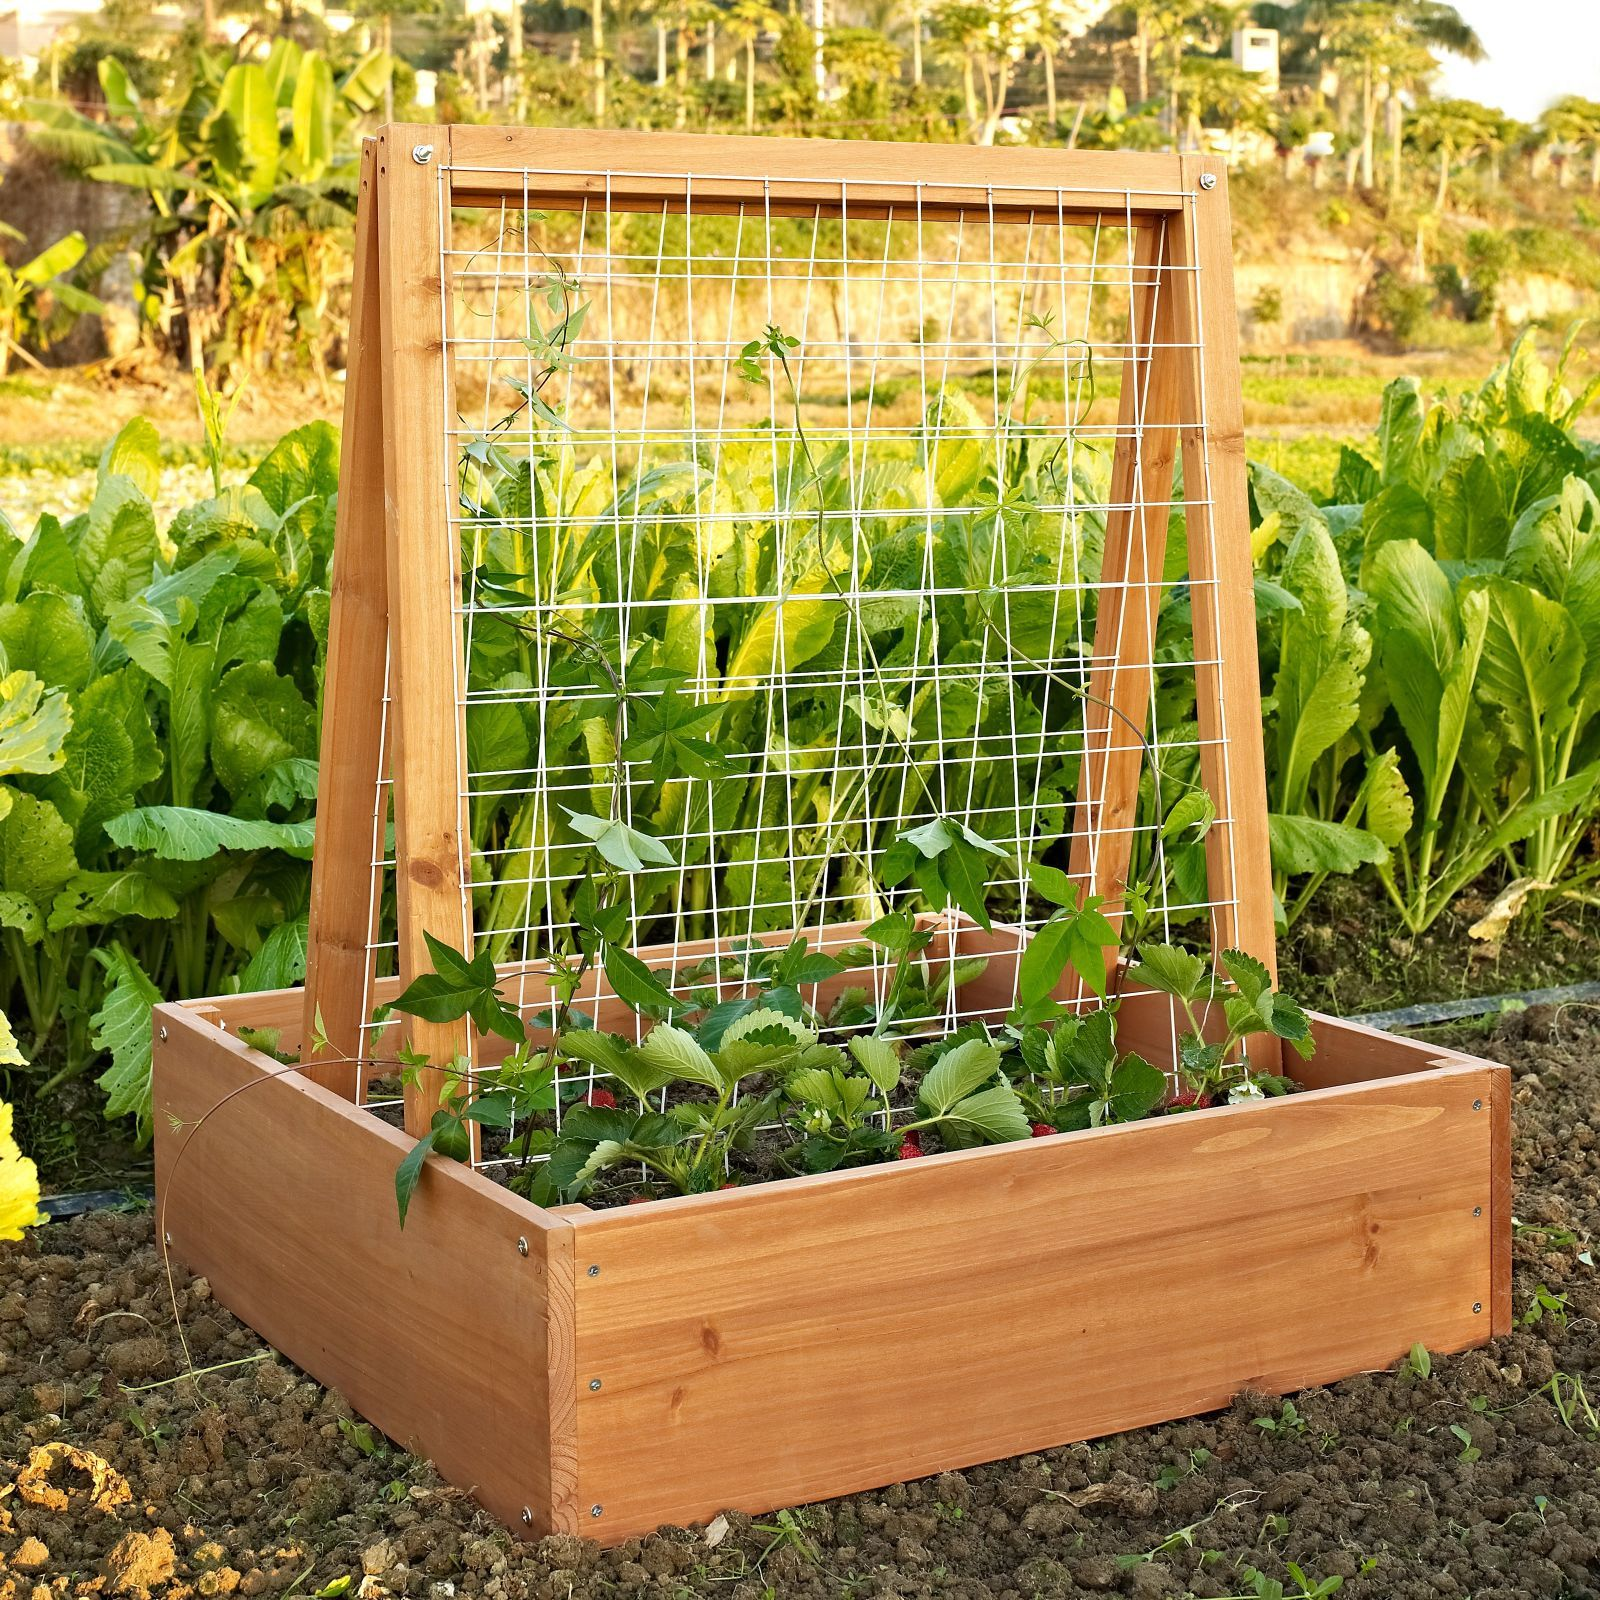 10 Raised Garden Beds That Fit Any Backyard Space Wire